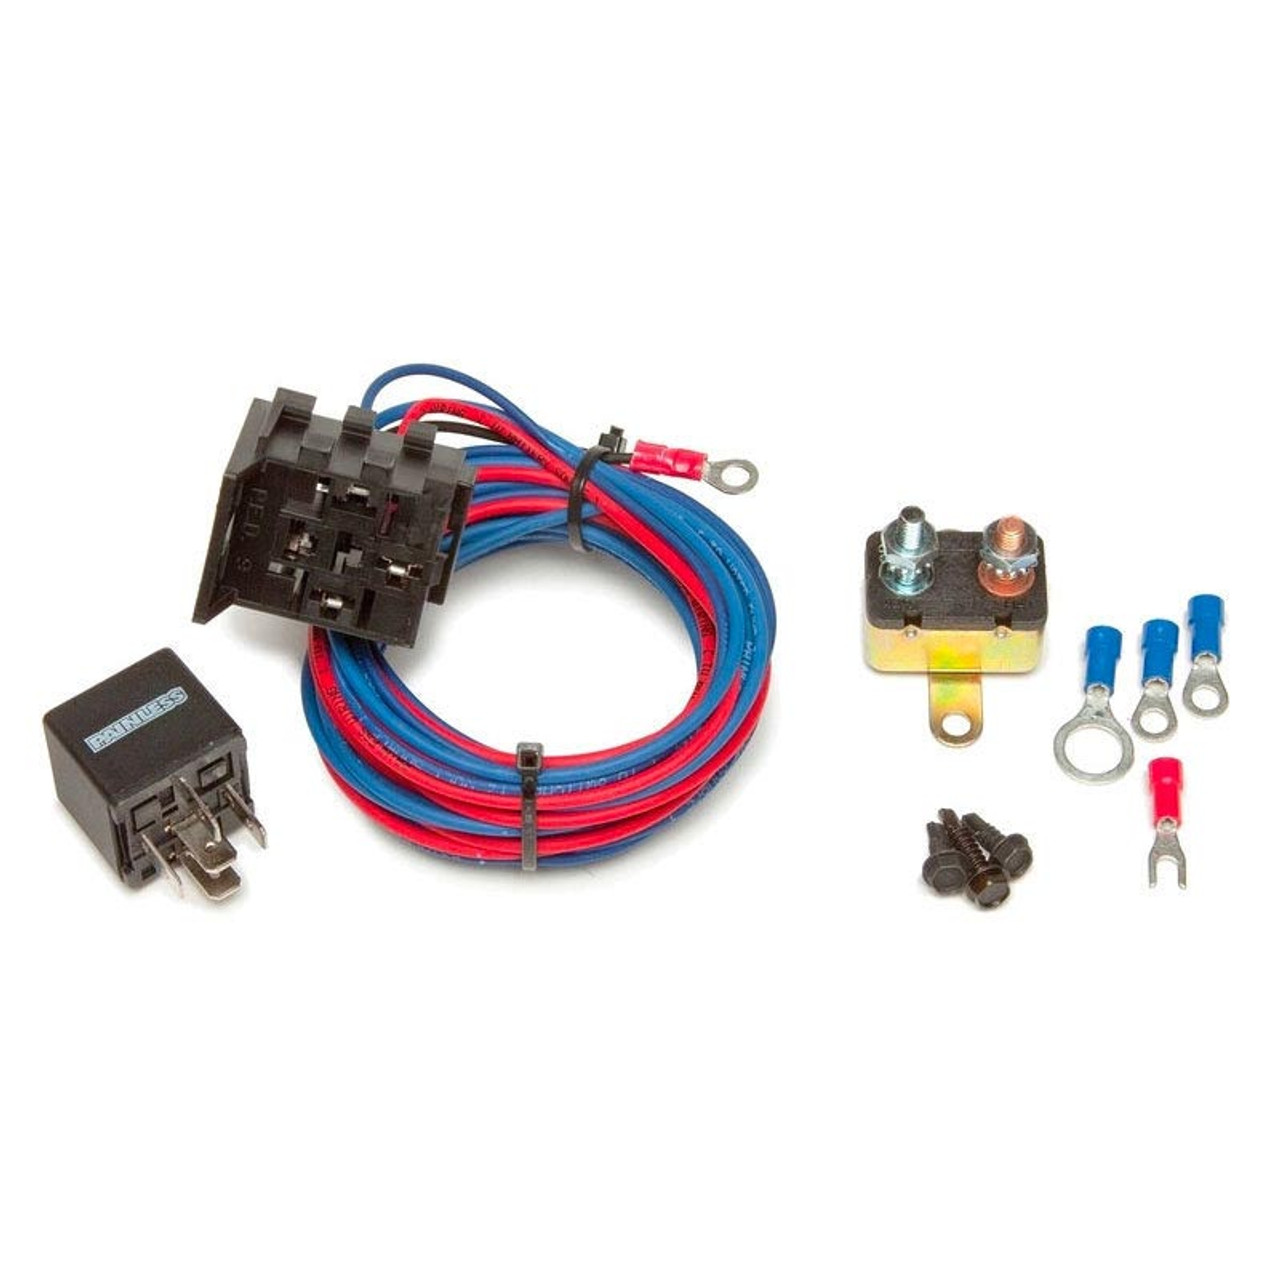 painless performance electric water pump wiring kit - 30 amp